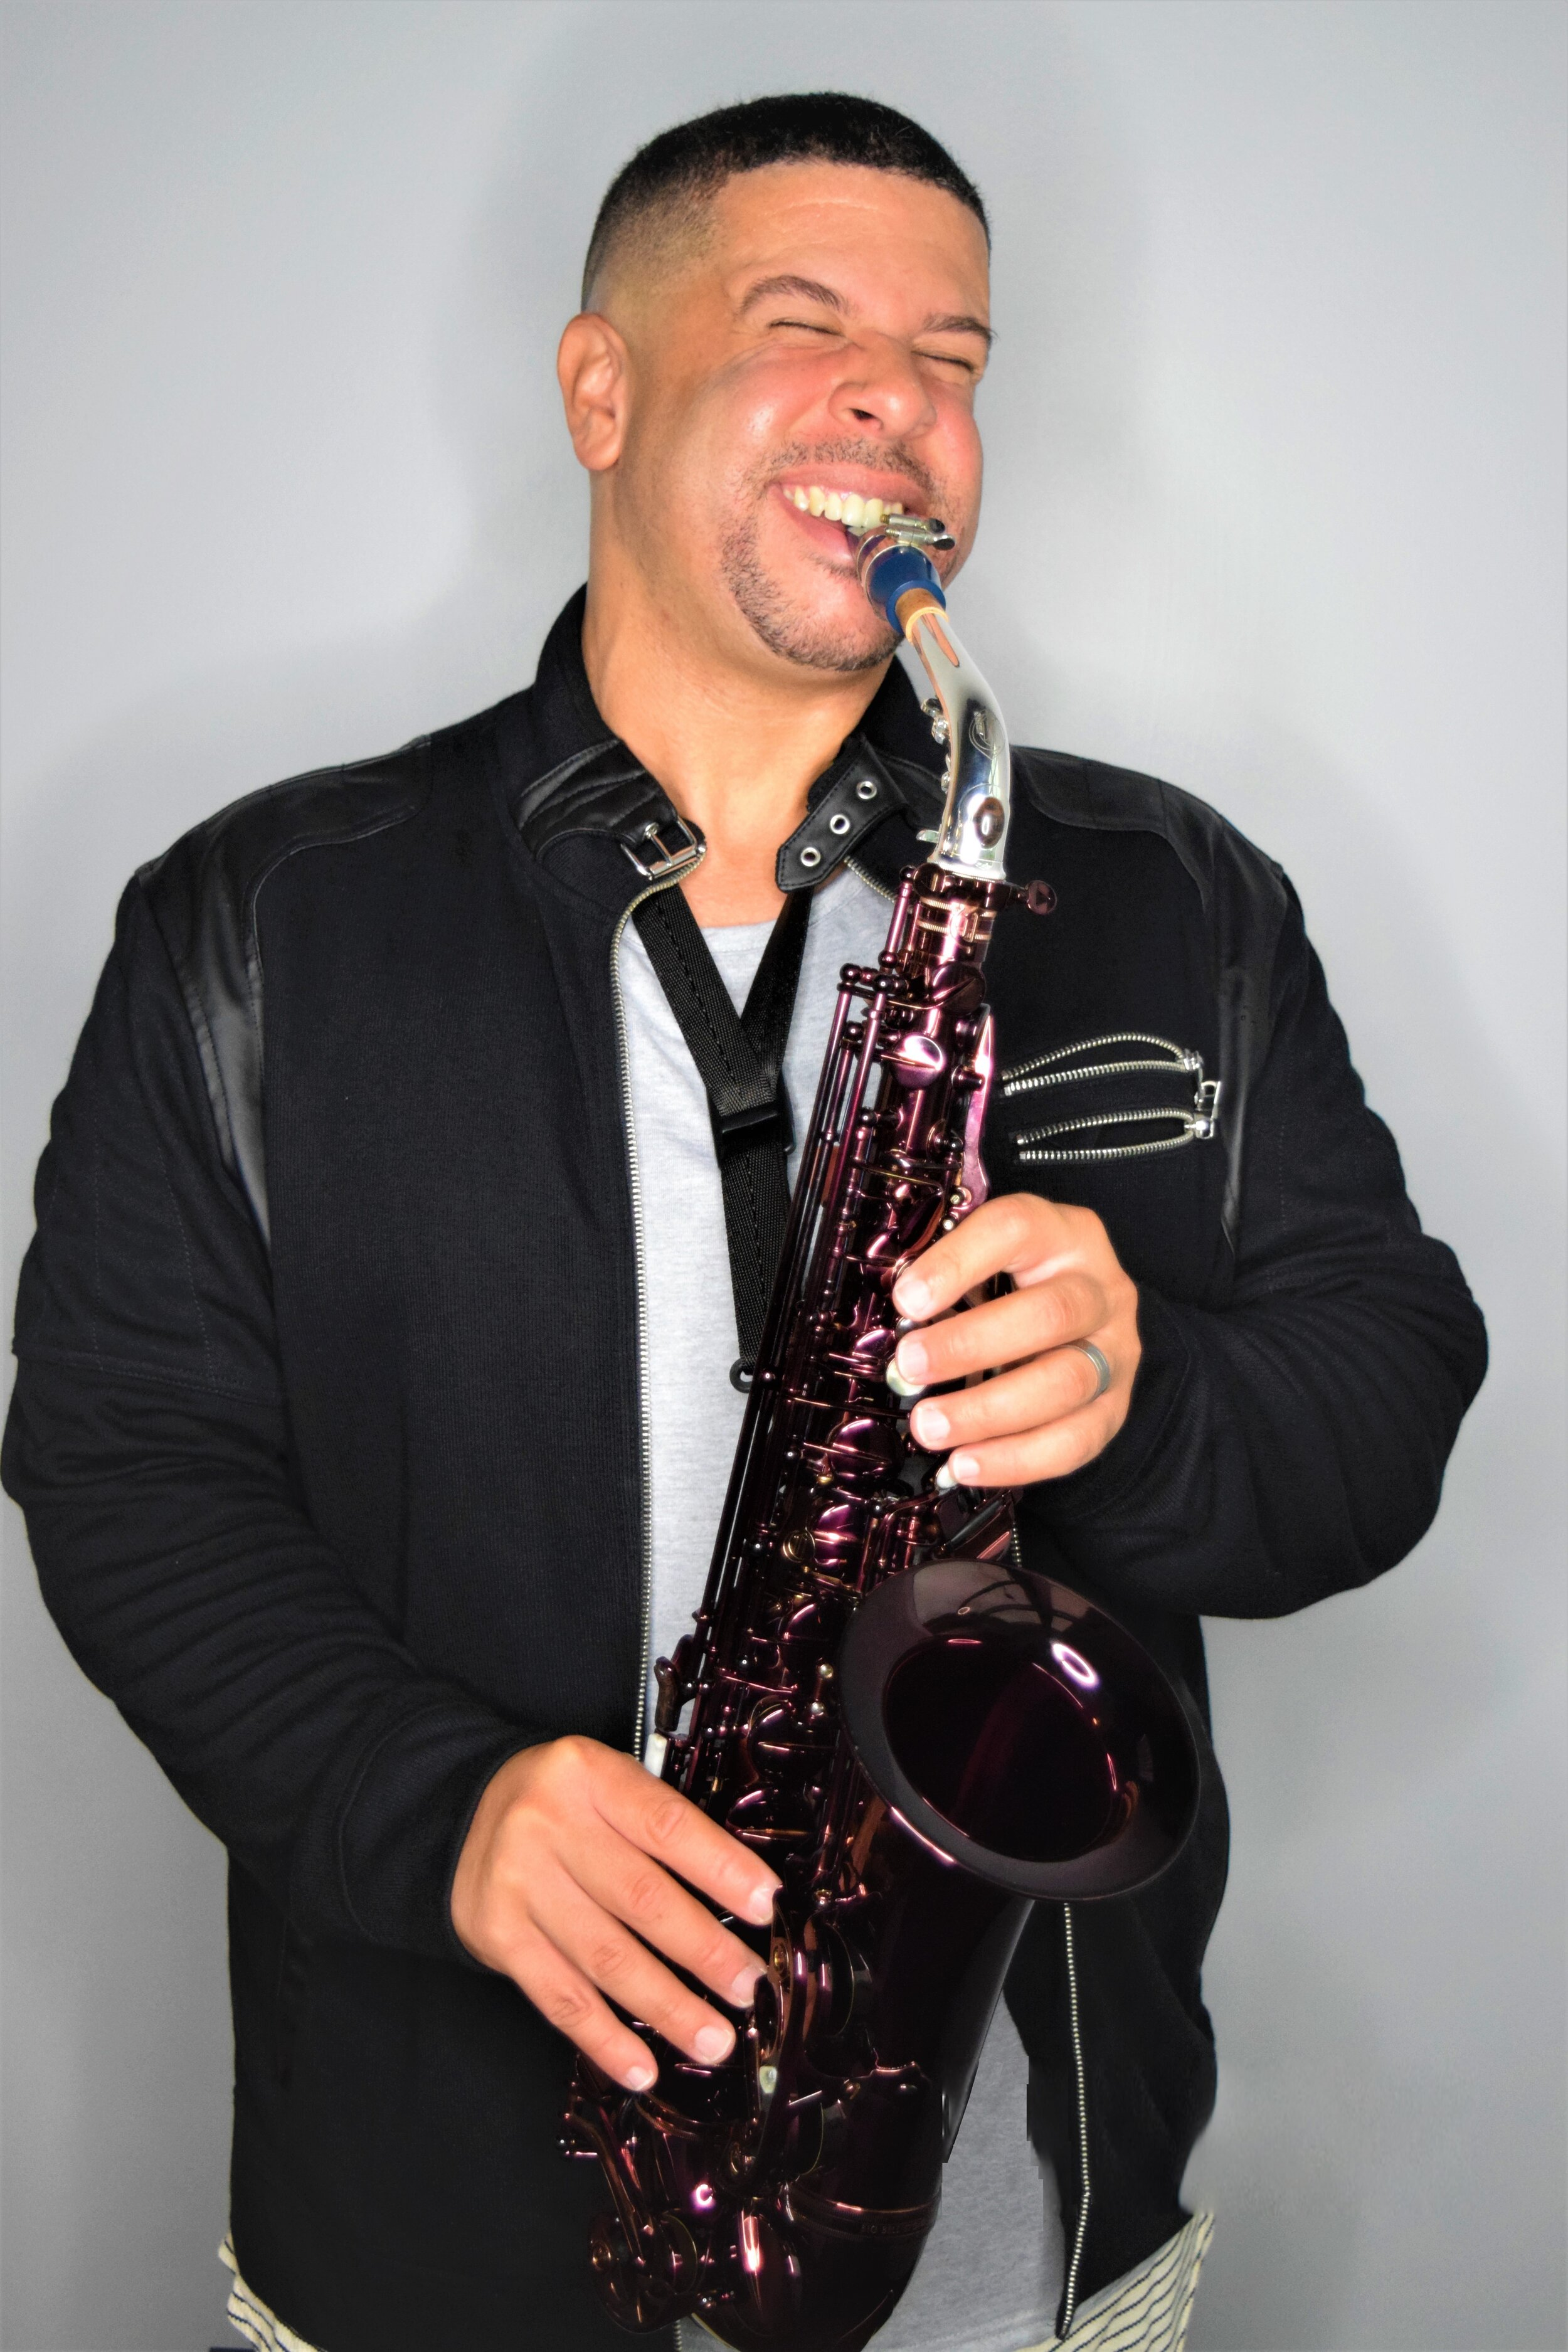 """Gabriel Bello              Saxophones             Keys/Vocals - A frequent guest player and close friend of the band, Gabriel Bello is no """"stranger"""" to the tribute band world. An accomplished multi-instrumentalist, vocalist, composer, arranger and producer, Gabe also is the founder and feature performer of national Stevie Wonder tribute """"Natural Wonder"""" as well as founder and front man of national Toto tribute """"Bless The Rains""""We in the Stranger have been privileged to work with Gabe and still often do. Check him out at www.gabrielbellomusic.com !"""